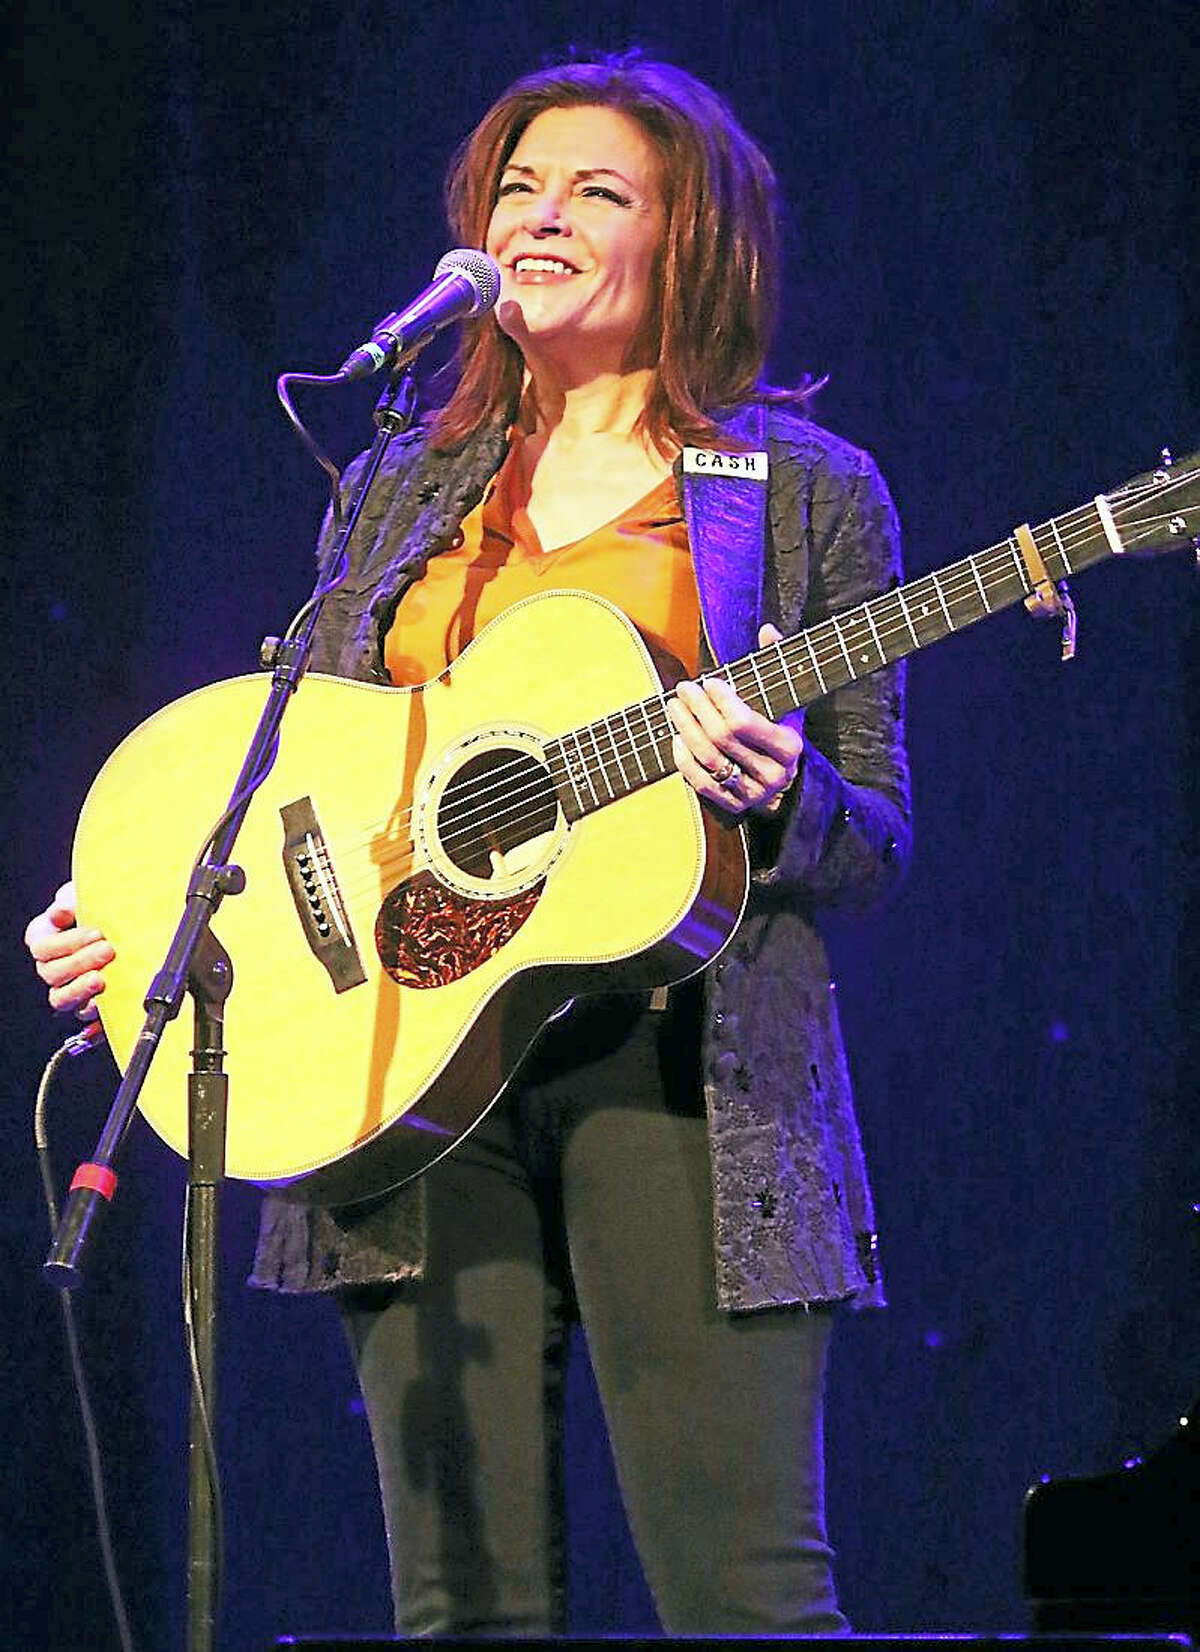 """Photo by John AtashianSinger, songwriter and author, Rosanne Cash, is shown performing on stage at the Infinity Music Hall in Hartford during her appearance on April 8. Cash, along with her husband and guitarist John Leventhal, entertained the capacity crowd with songs from her latest award winning album, """"The River & the Thread"""" and much more. To view more great shows coming to the Infinity Music Hall in Hartford and Norfolk you can visit www.infinityhall.com"""